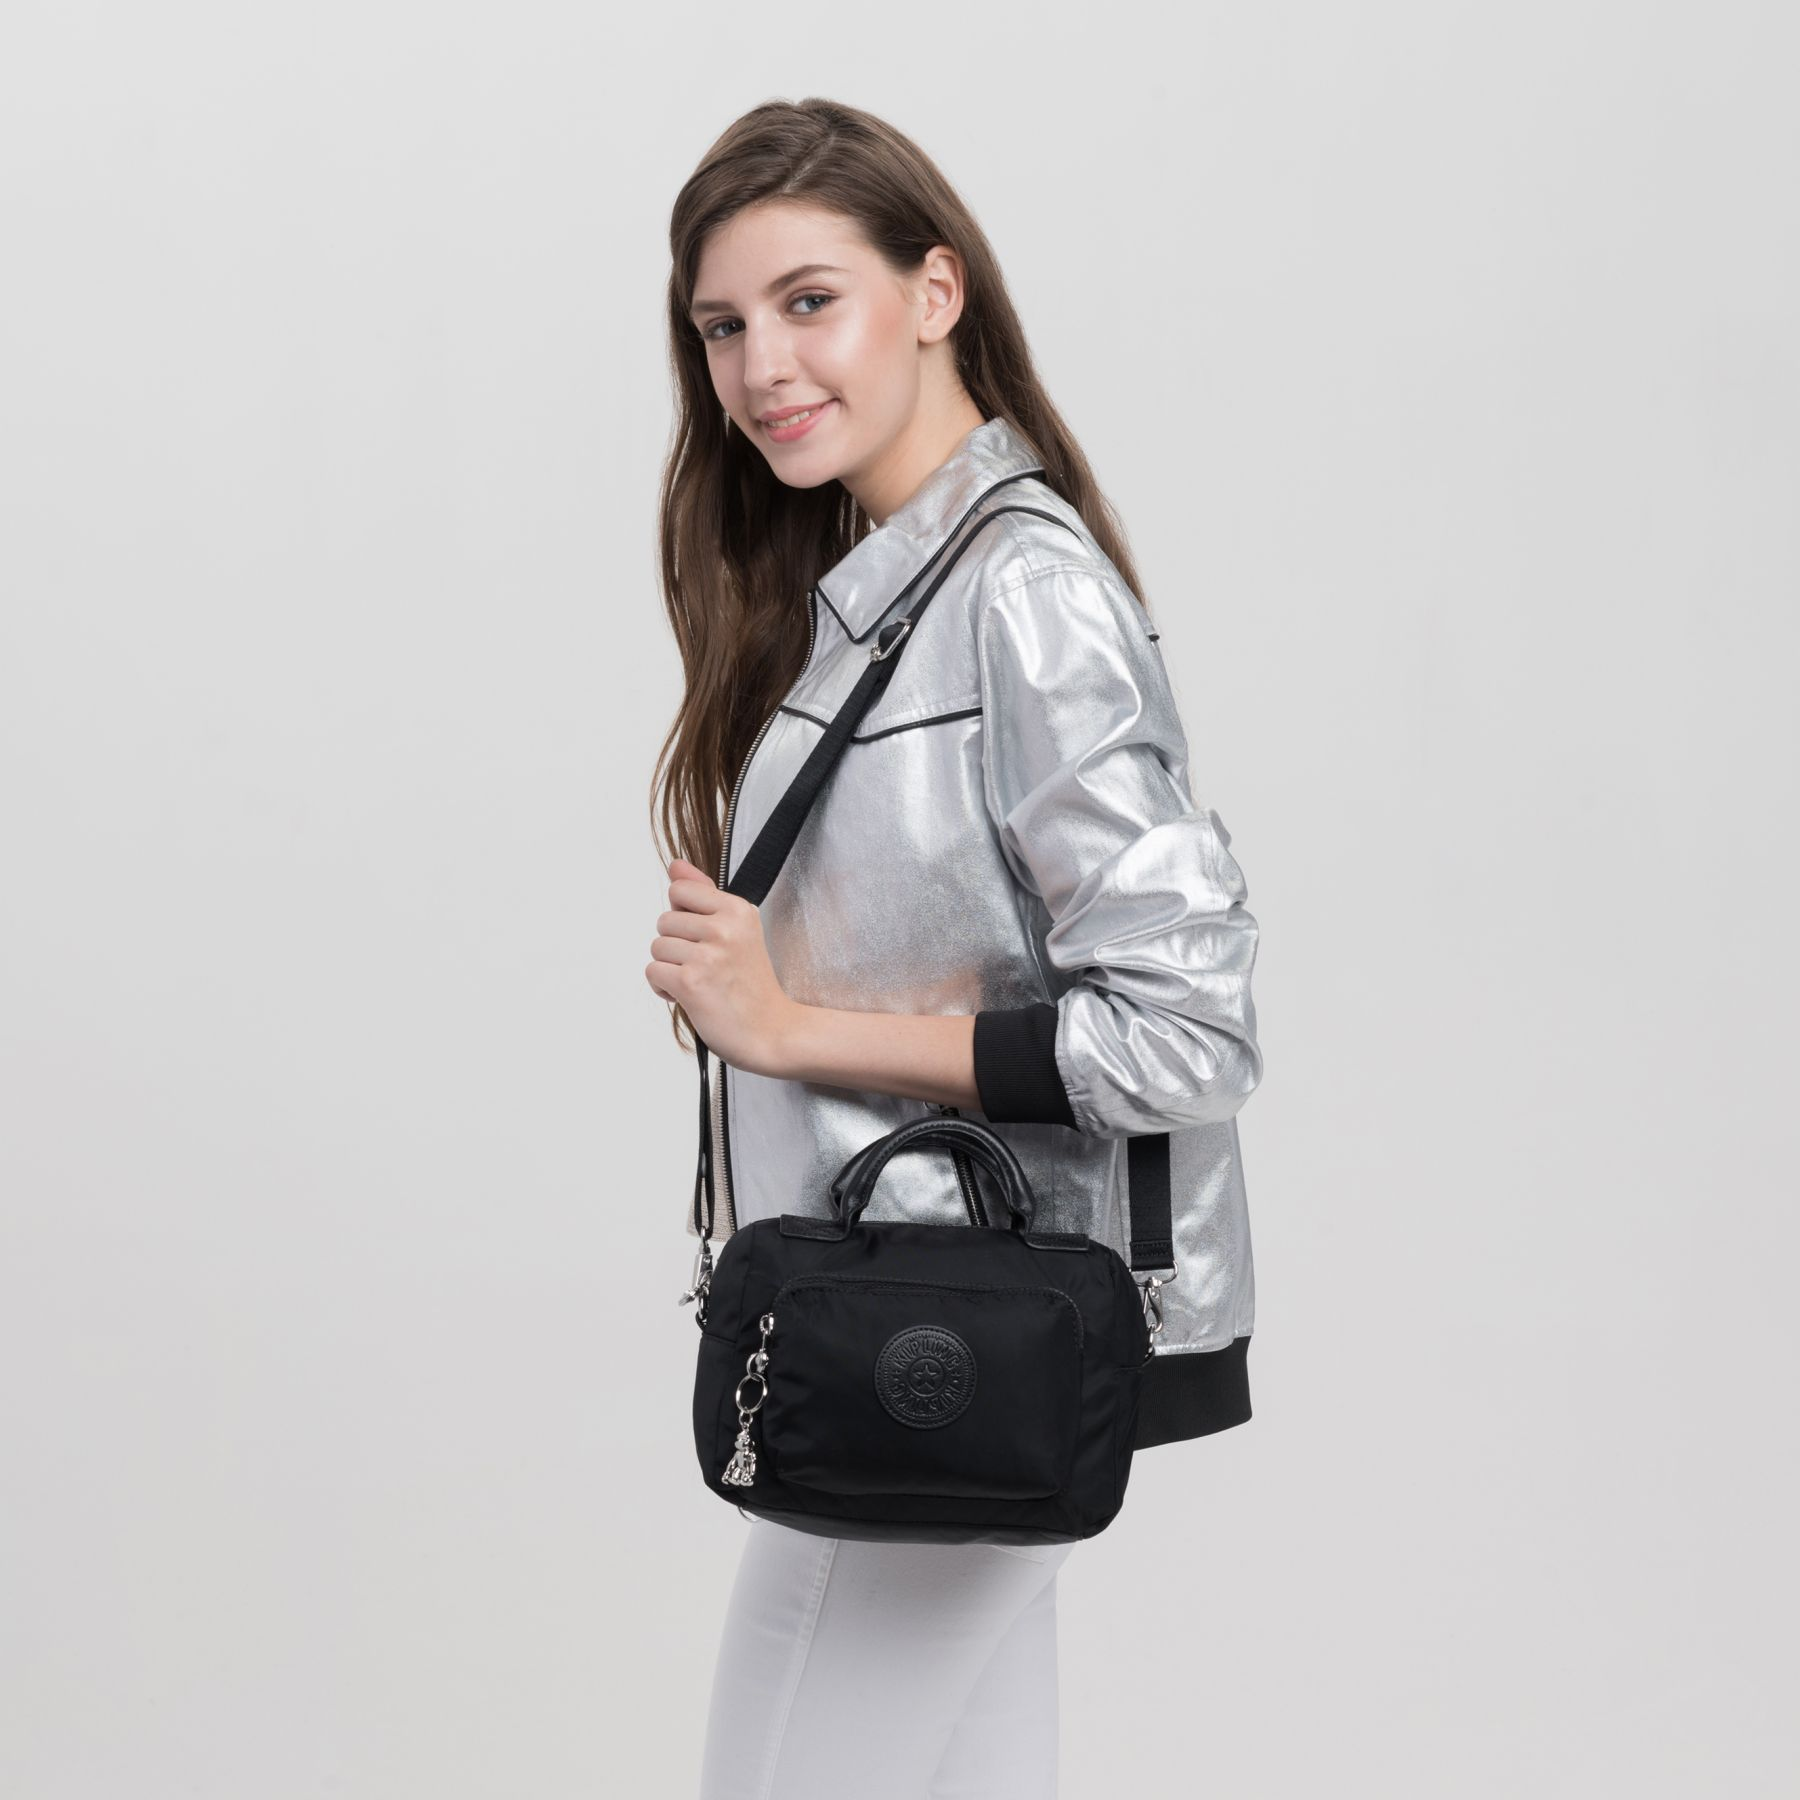 AZRA Latest Shoulder Bags by Kipling - view 9